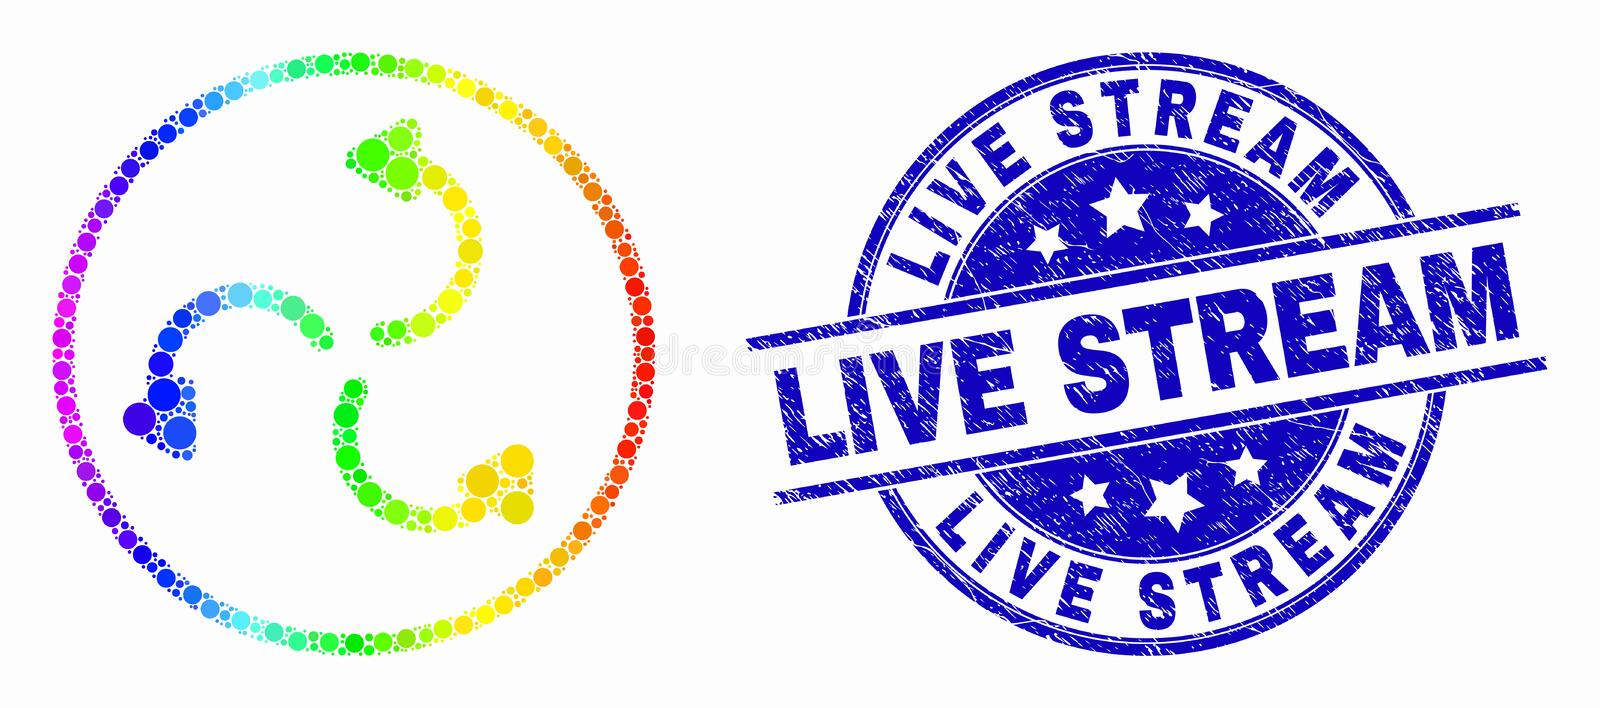 Vector Spectrum Pixel Cyclone Arrows Icon and Distress Live Stream Stamp. Dotted rainbow gradiented cyclone arrows mosaic icon and Live Stream seal stamp. Blue stock illustration